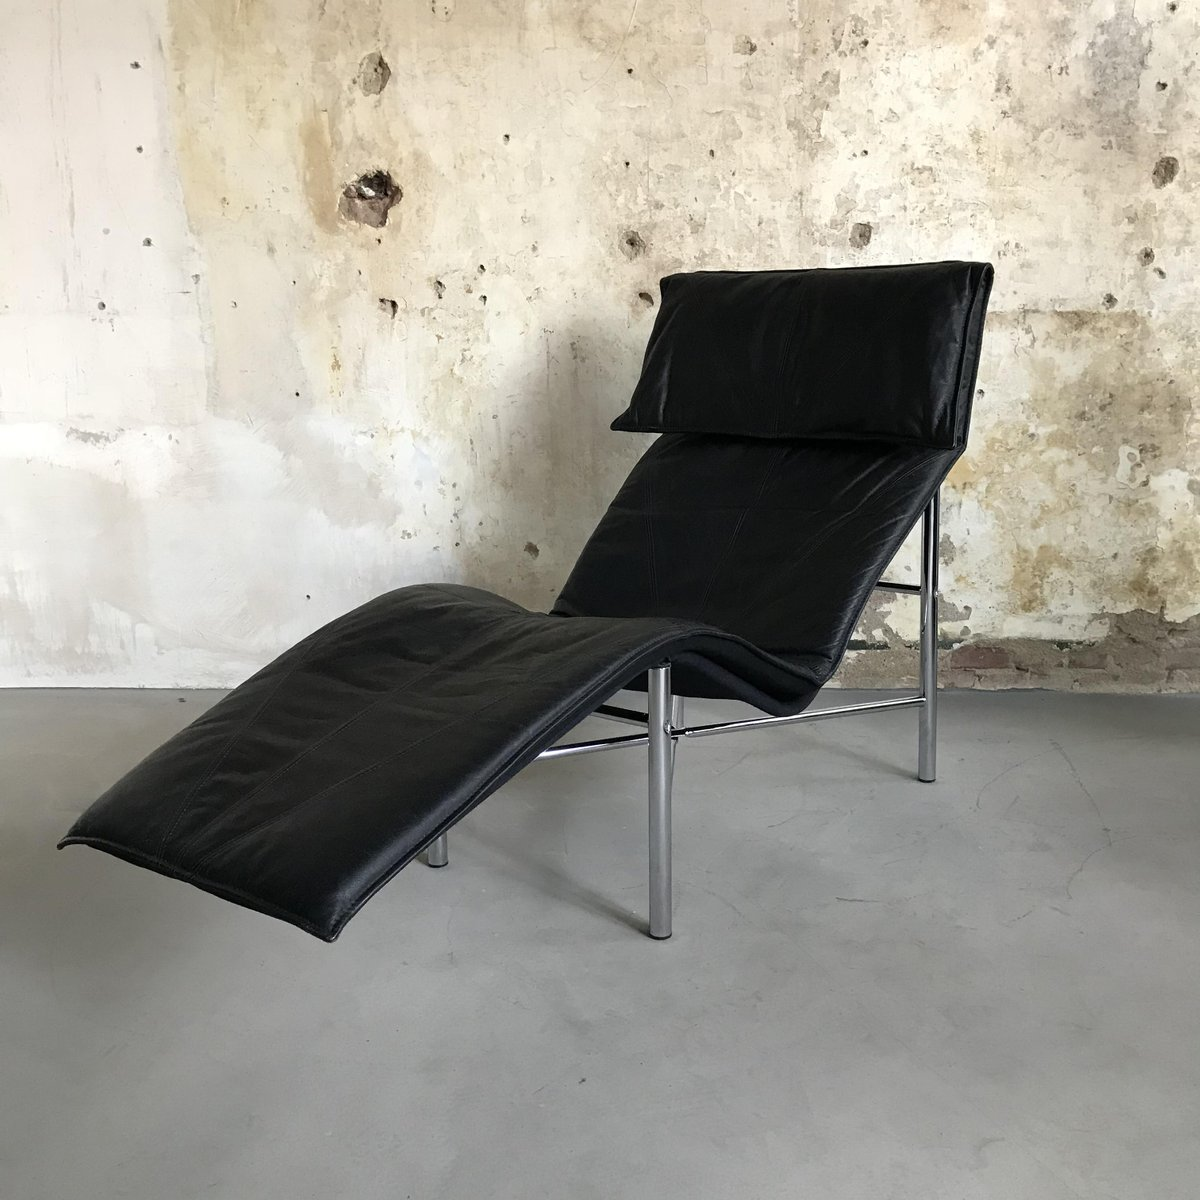 vintage model skye chaise lounge by tord bjorklund for ikea 1980s for sale at pamono. Black Bedroom Furniture Sets. Home Design Ideas